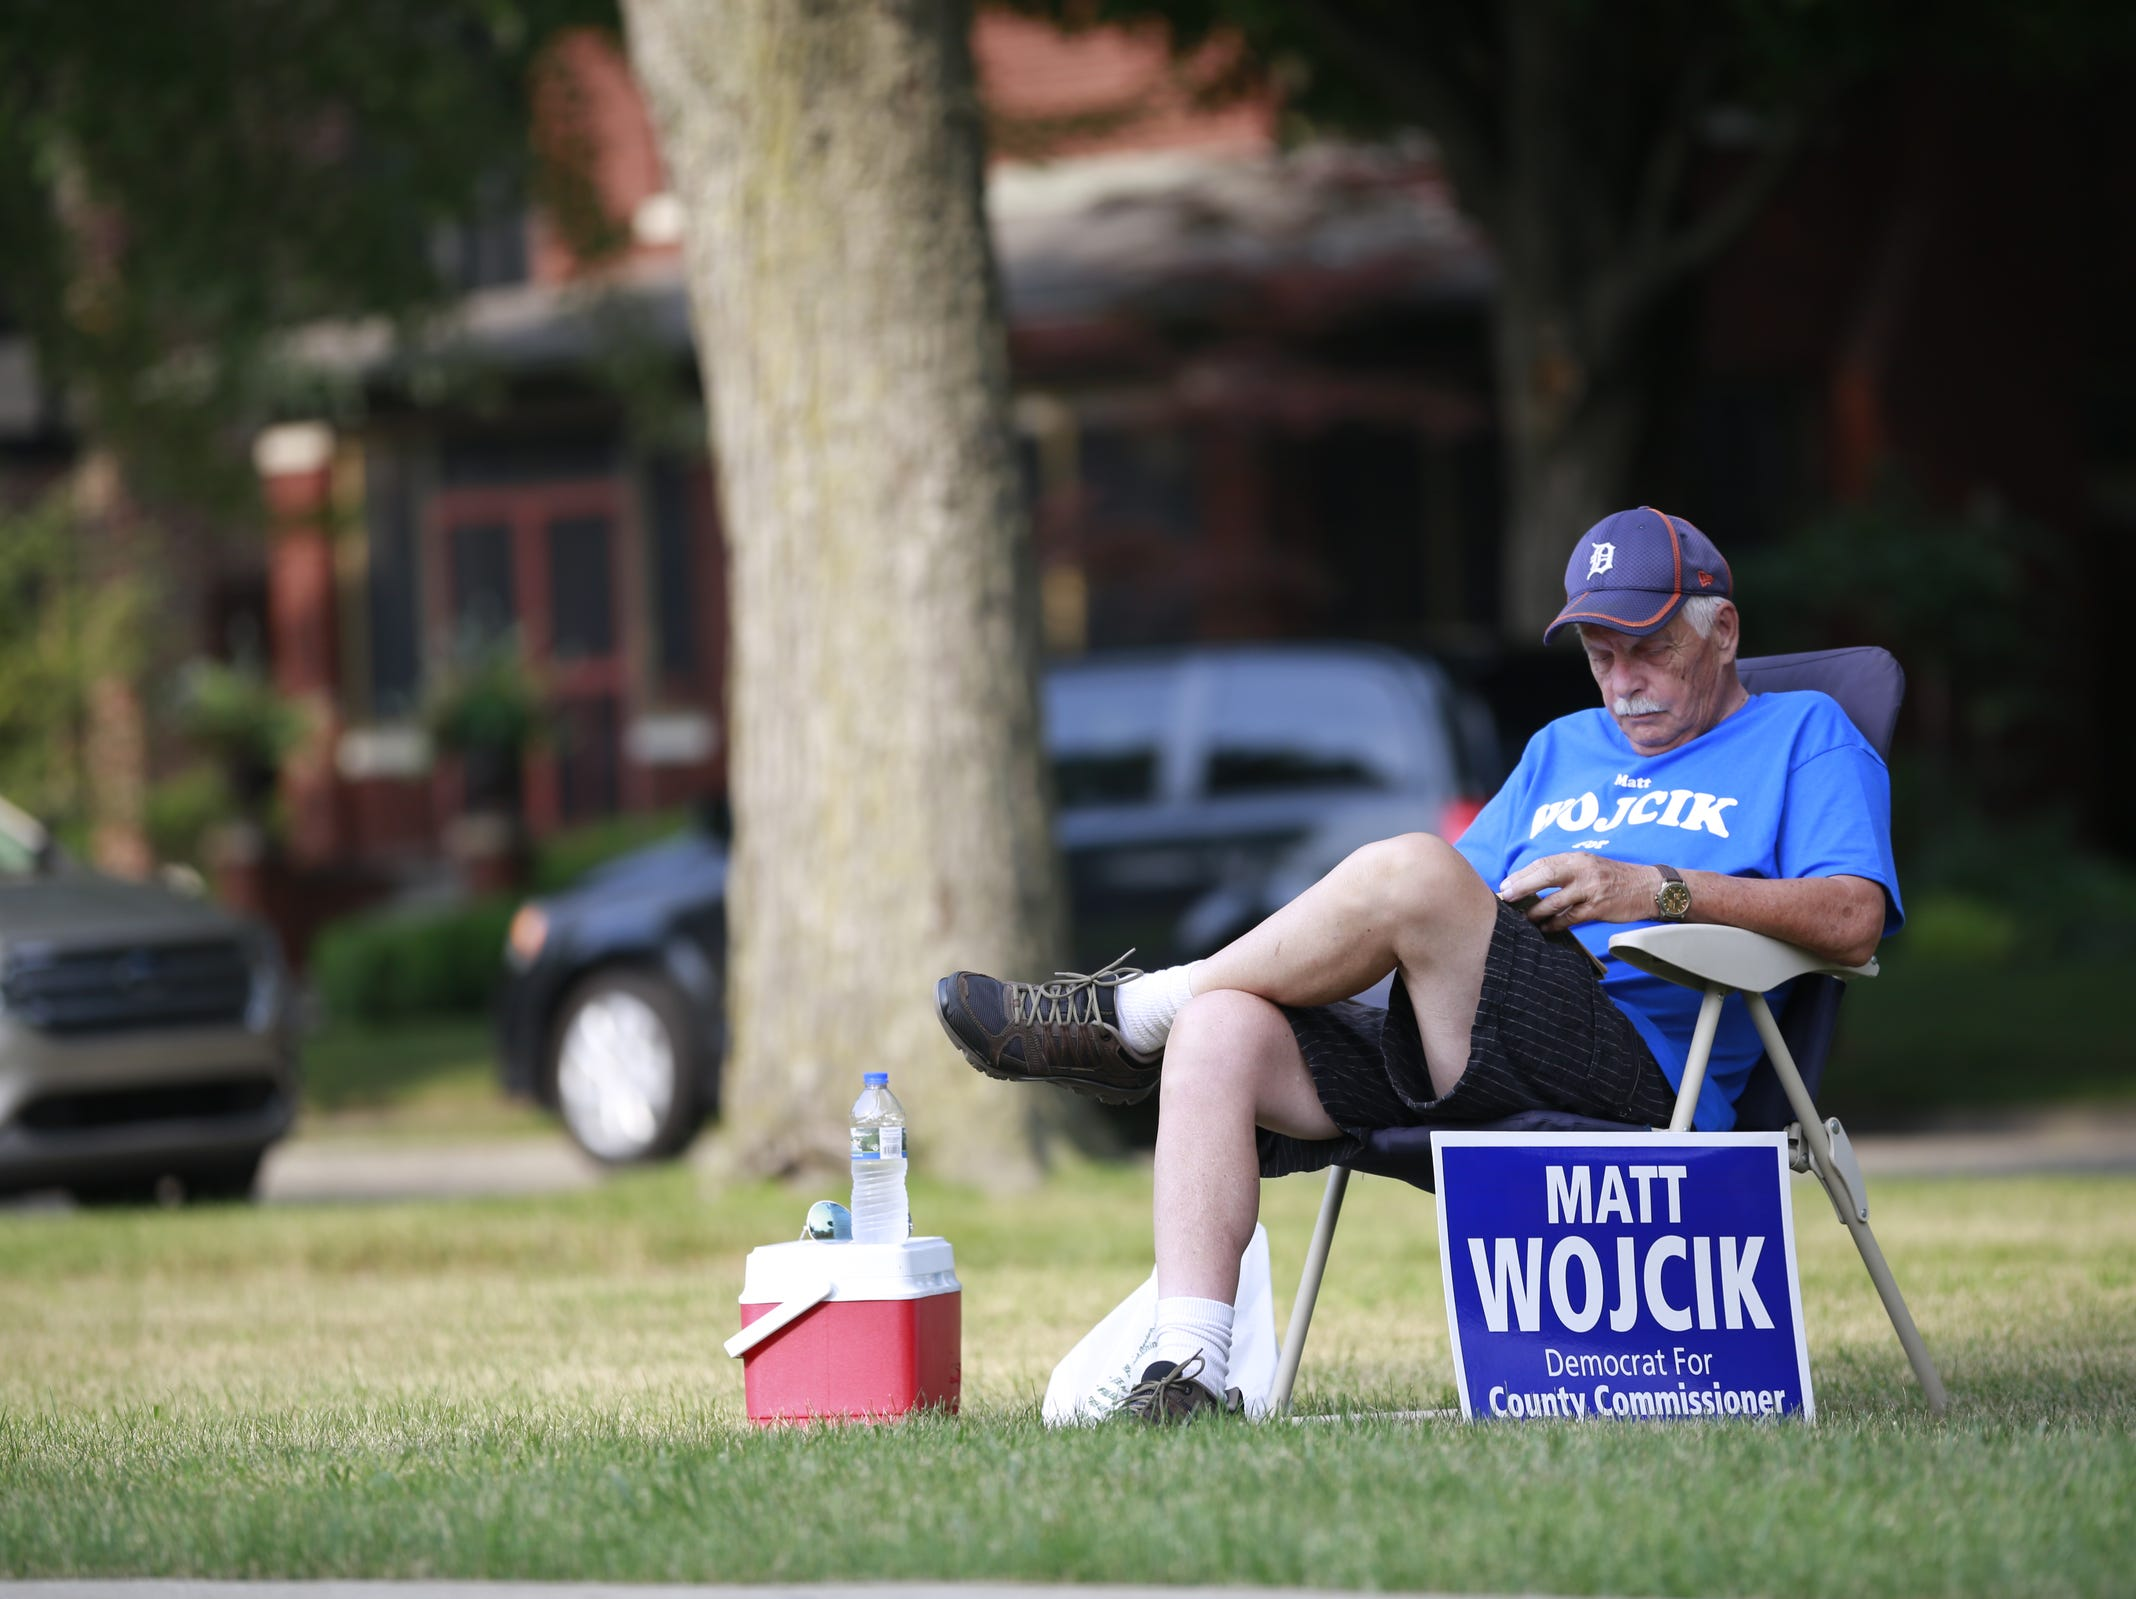 Voters turn out to the Wilson Gymnasium polling location in Mt. Clemens, Mich., Tuesday, August 7, 2018.